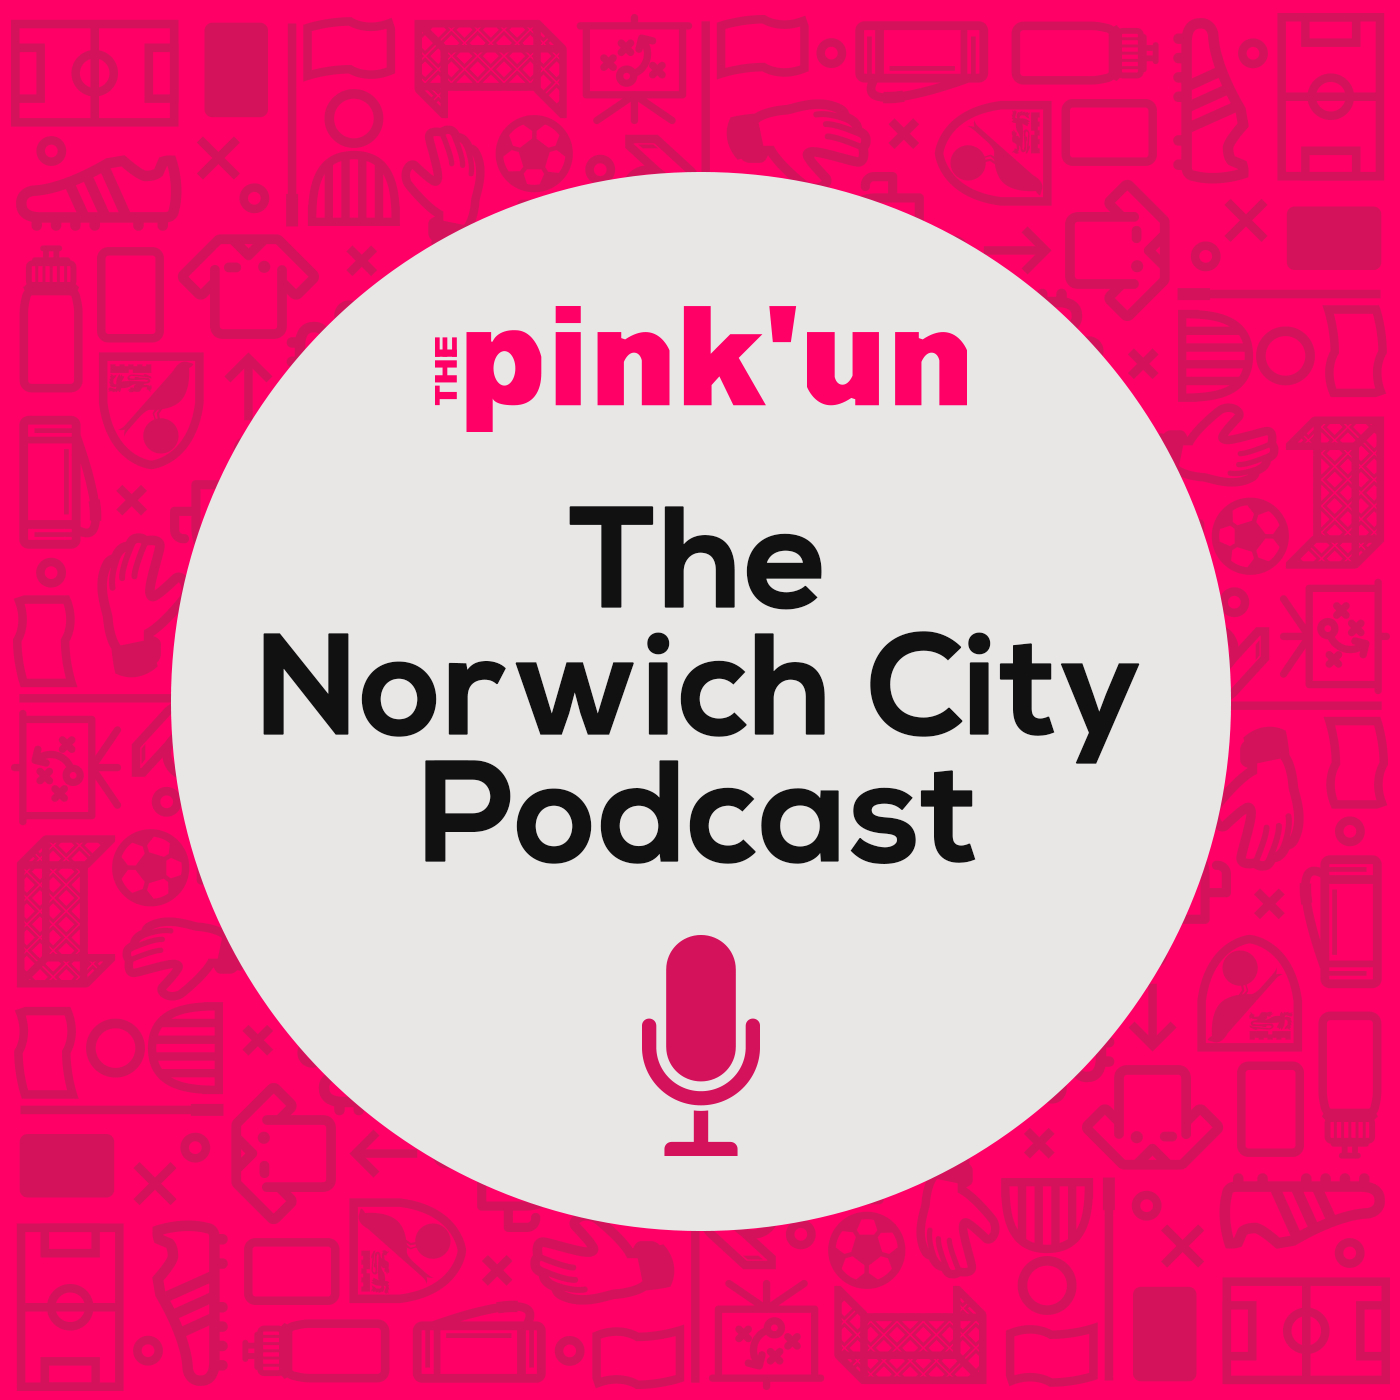 The Norwich City Podcast